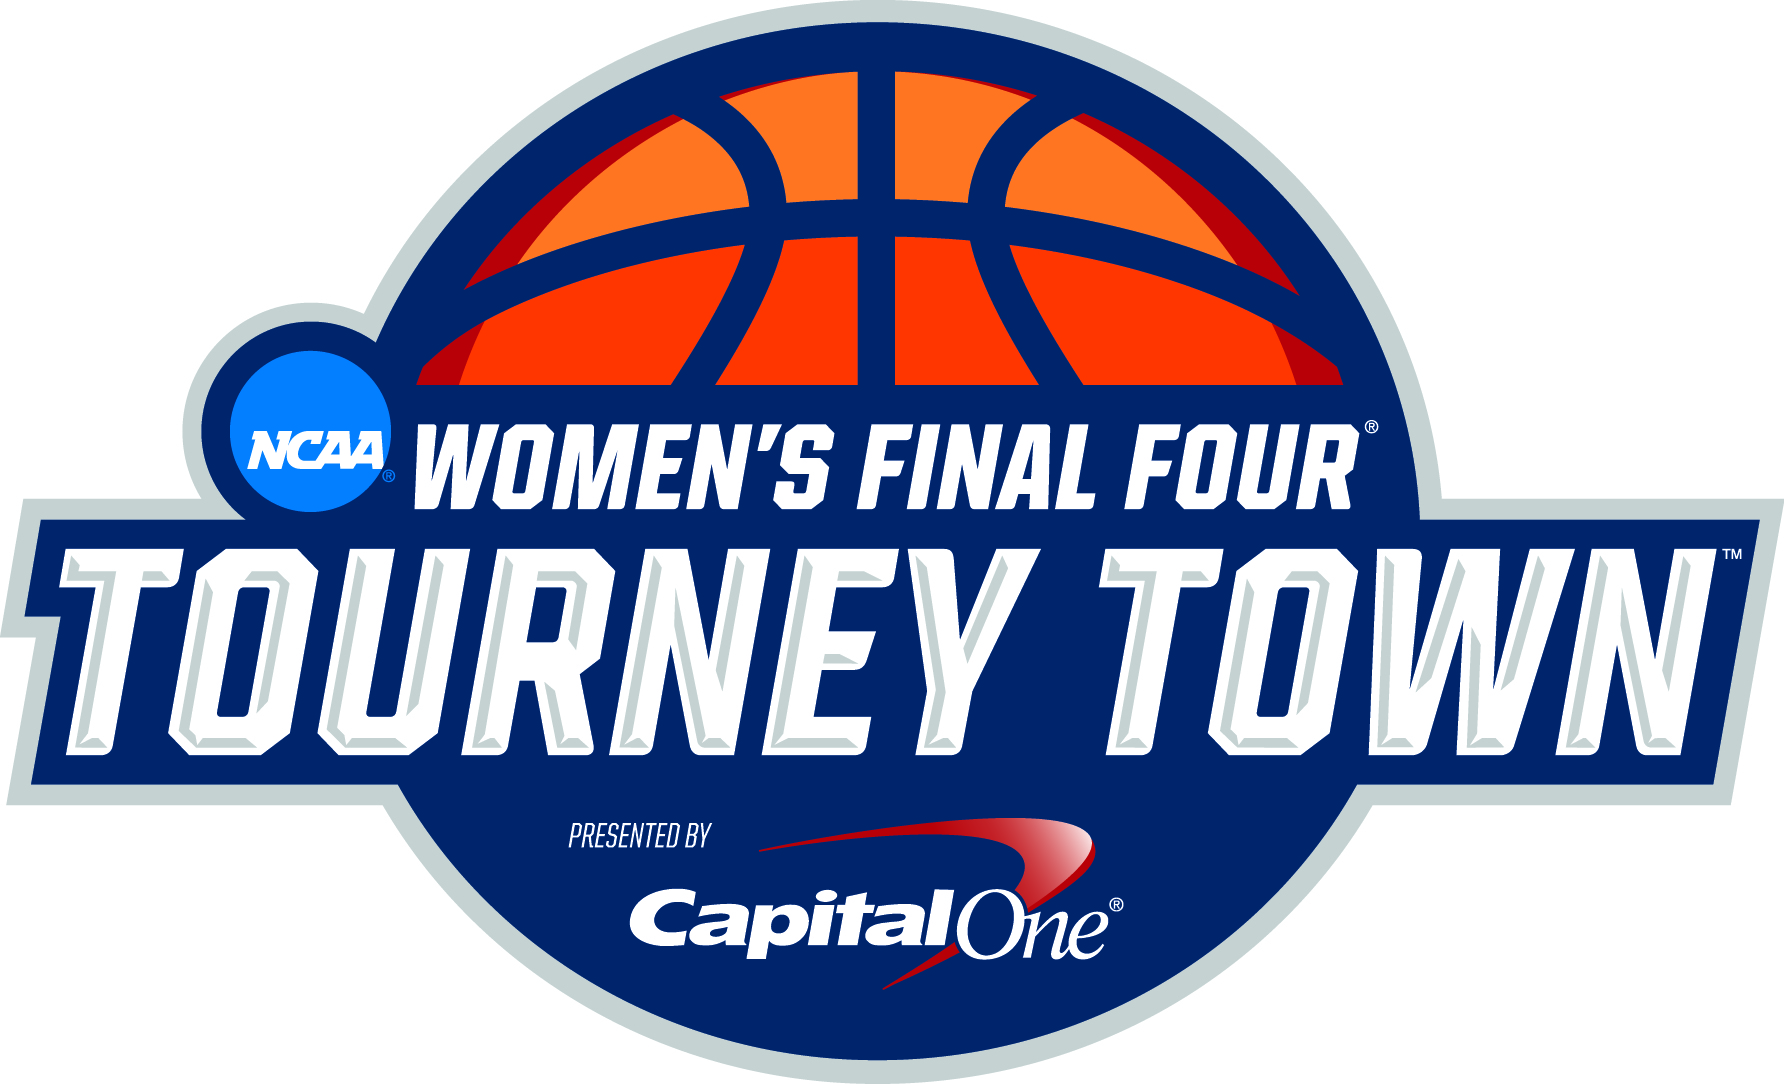 NCAA- Women's Final Four Tourney Town logo